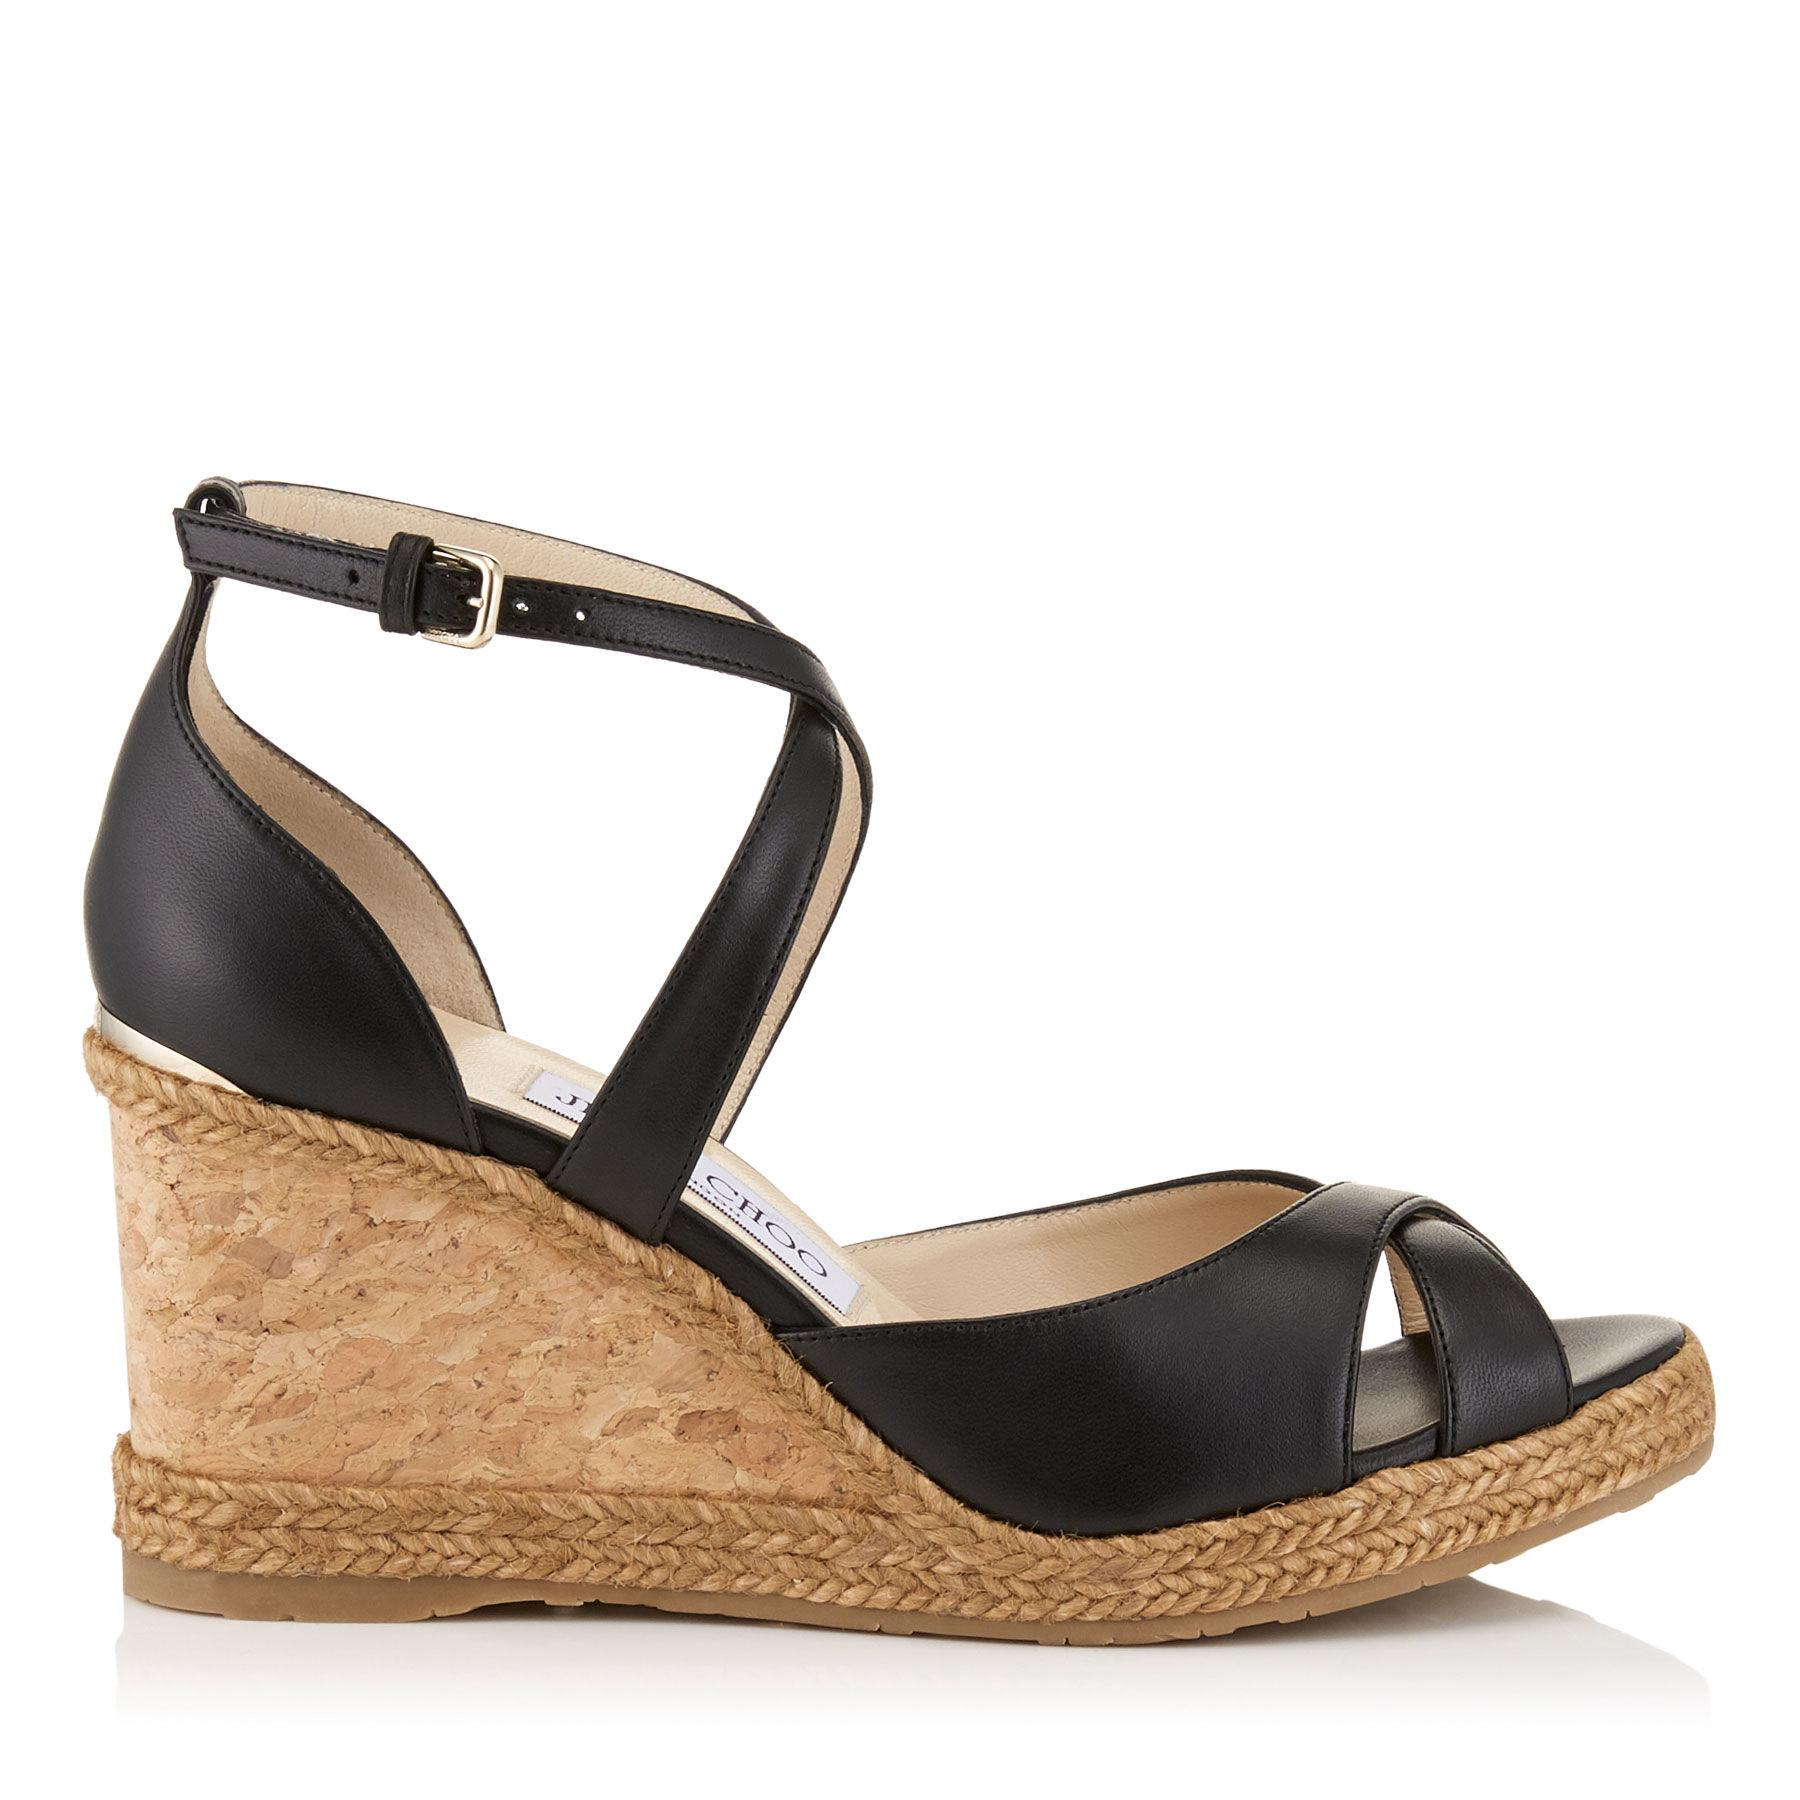 Jimmy choo Alita 105 leather wedge sandals Outlet With Mastercard 9kCH02umTP